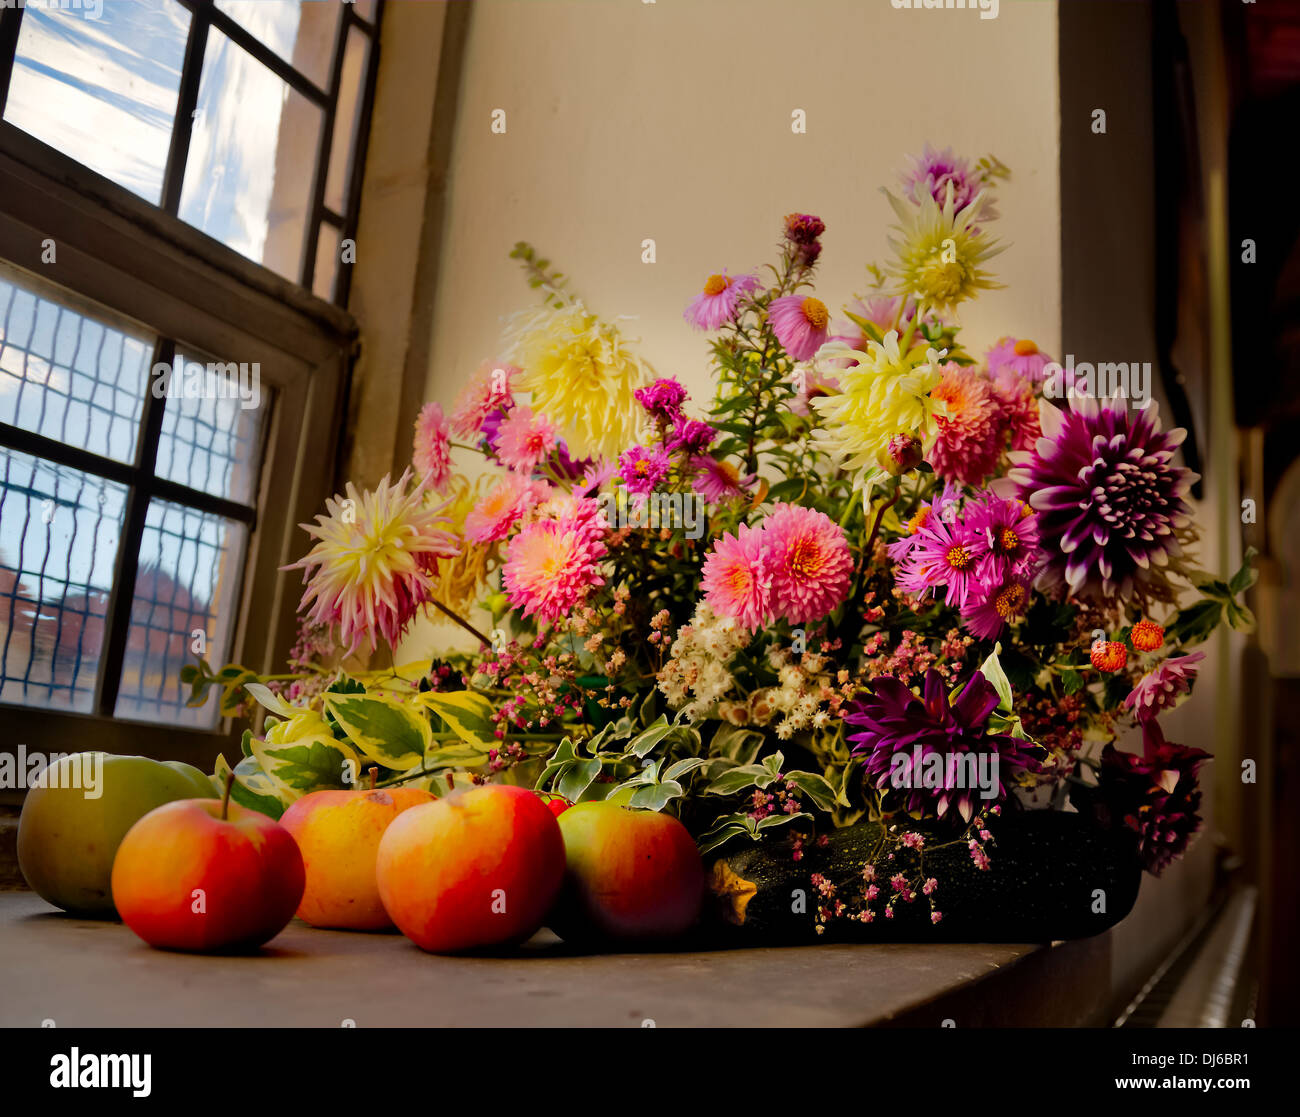 Flowers and apples in Molton Church. - Stock Image